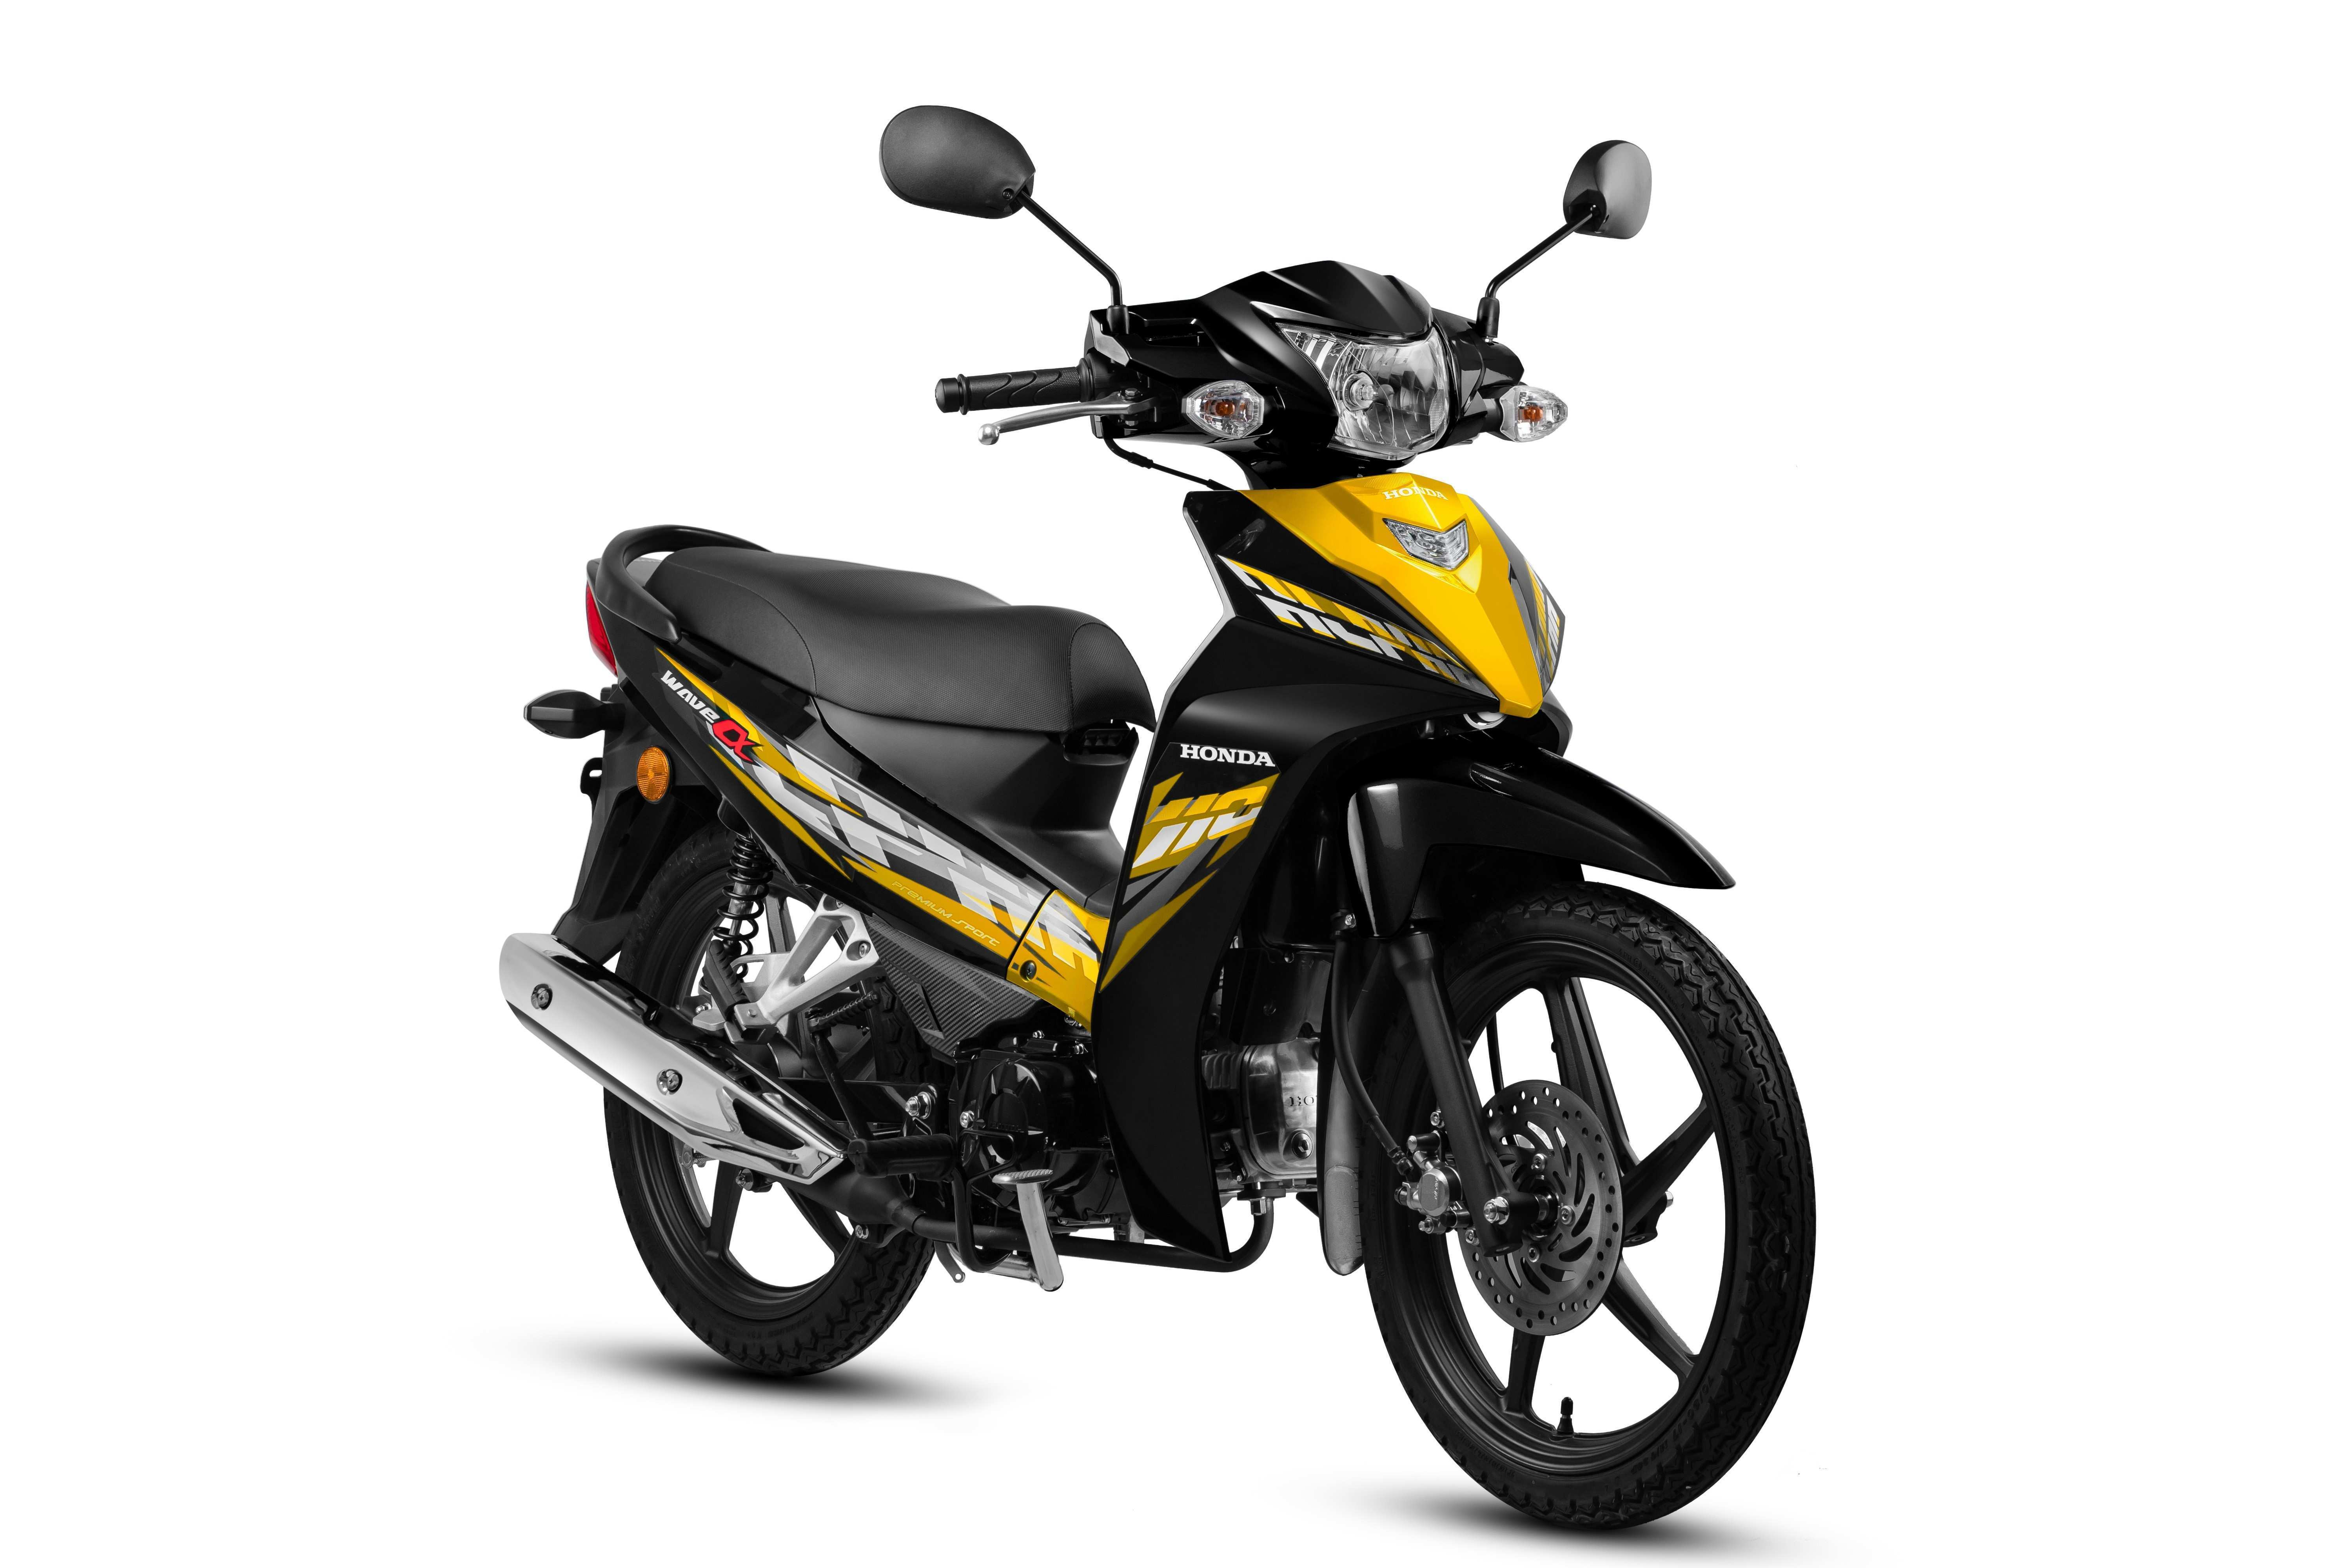 90 Concept of The Honda Wave 2019 Review And Specs Review with The Honda Wave 2019 Review And Specs